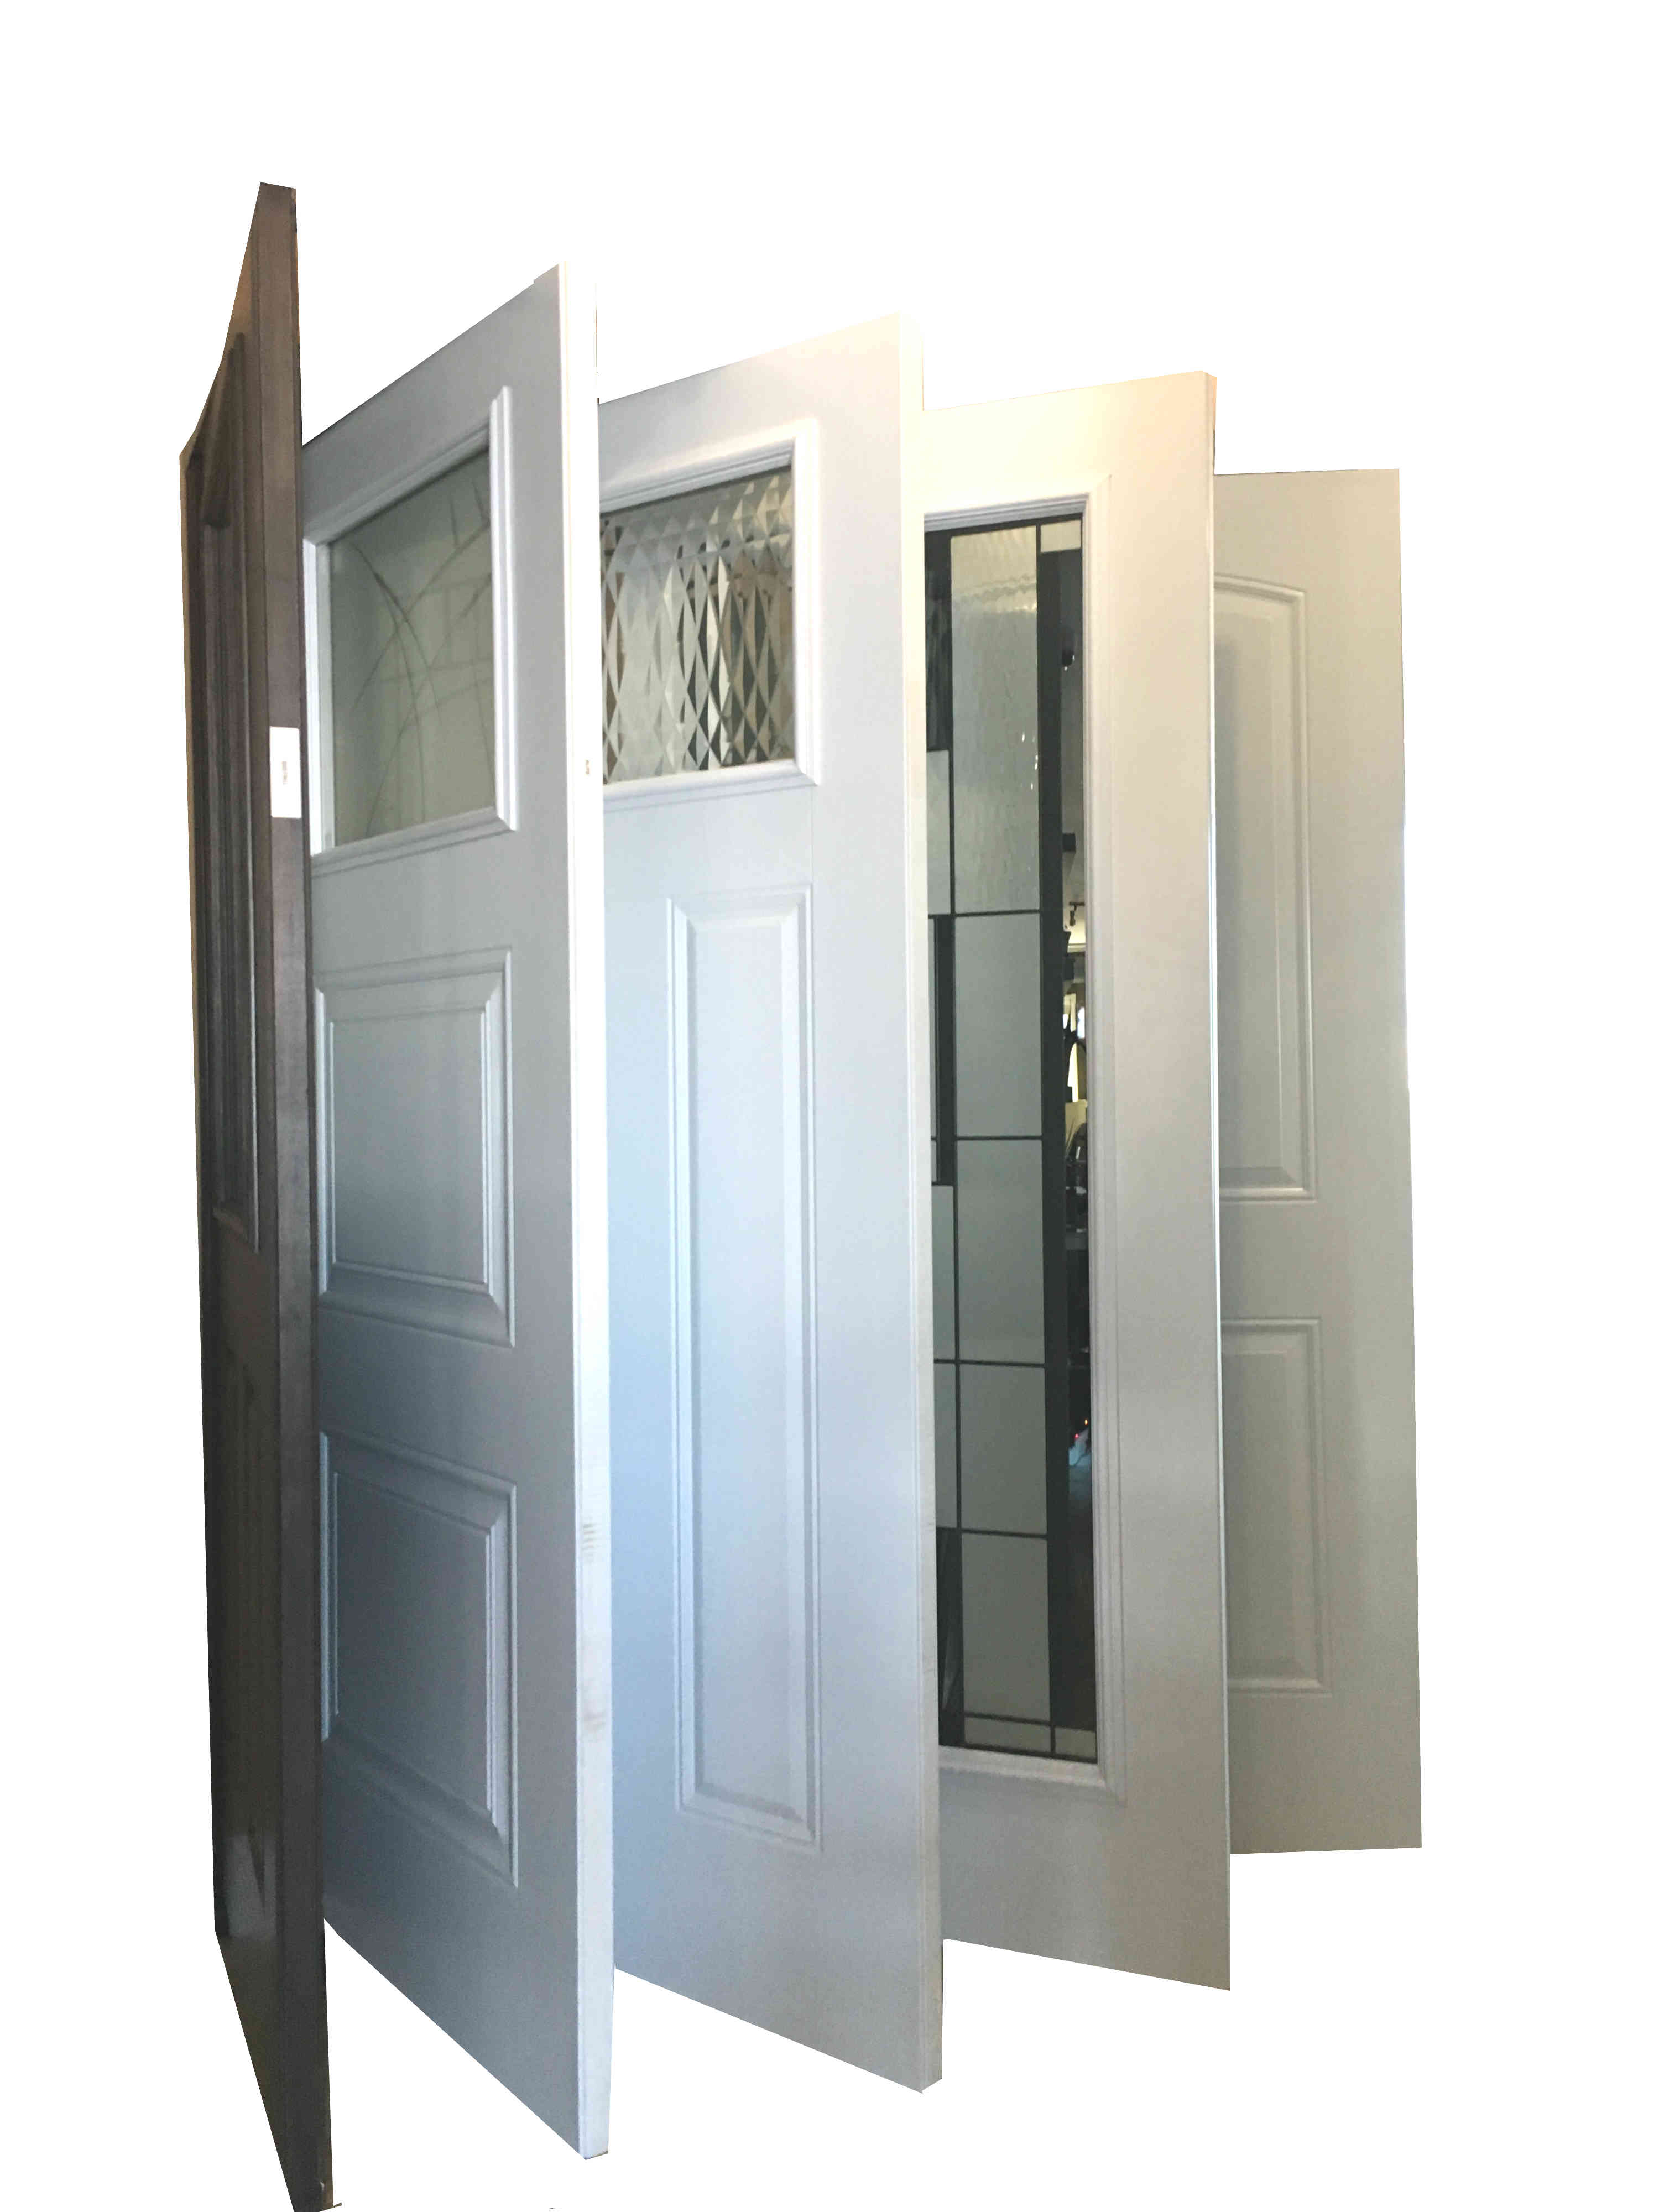 What Types of Door Construction Materials are Available?